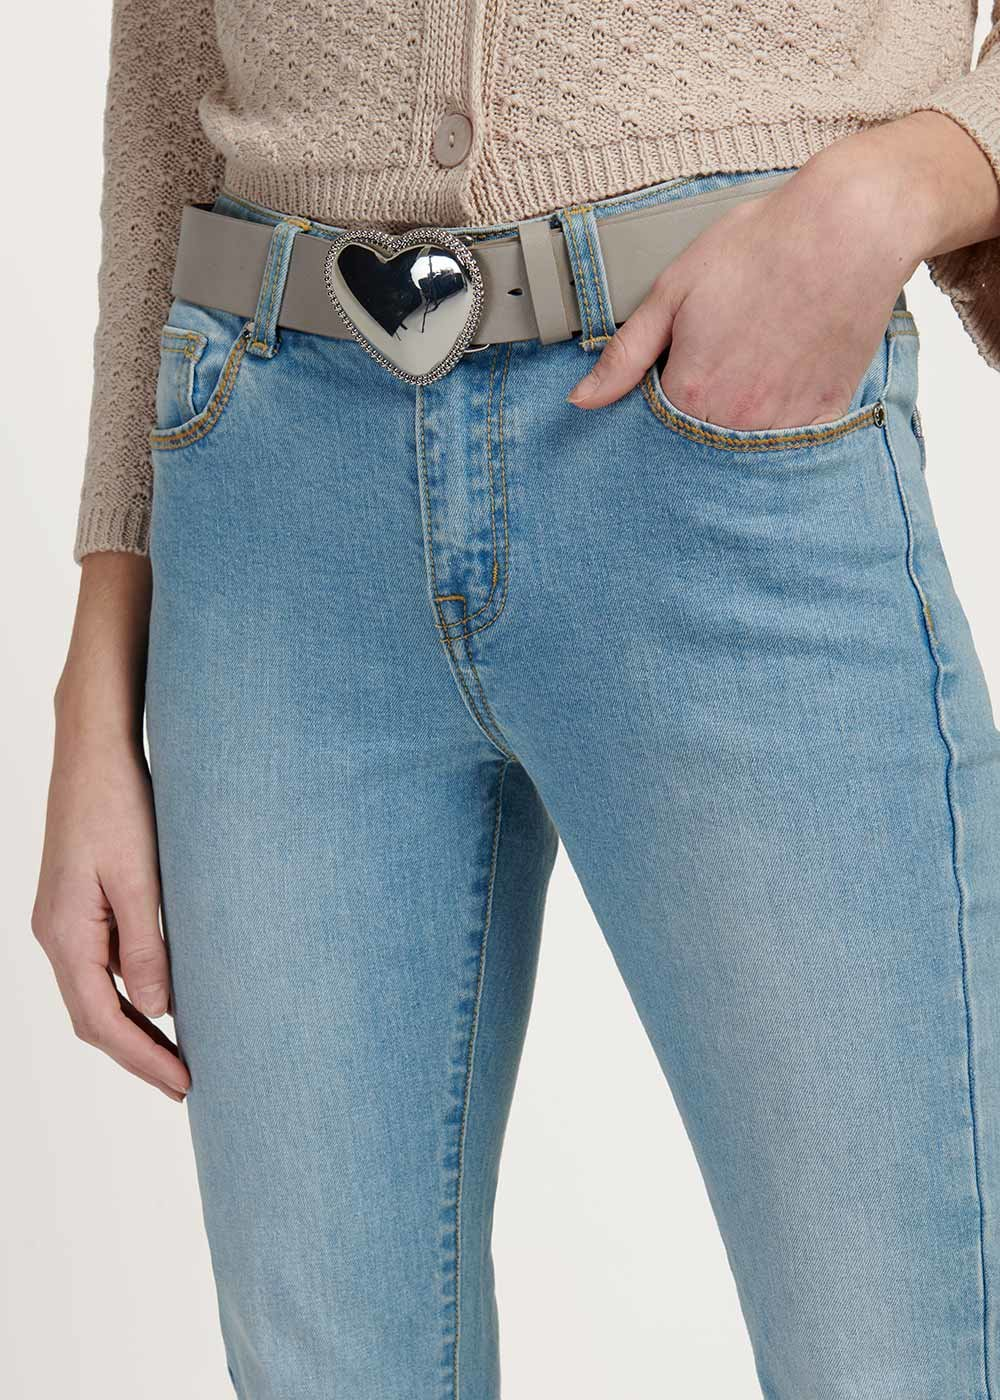 Coras belt with heart-shaped buckle - Grey - Woman